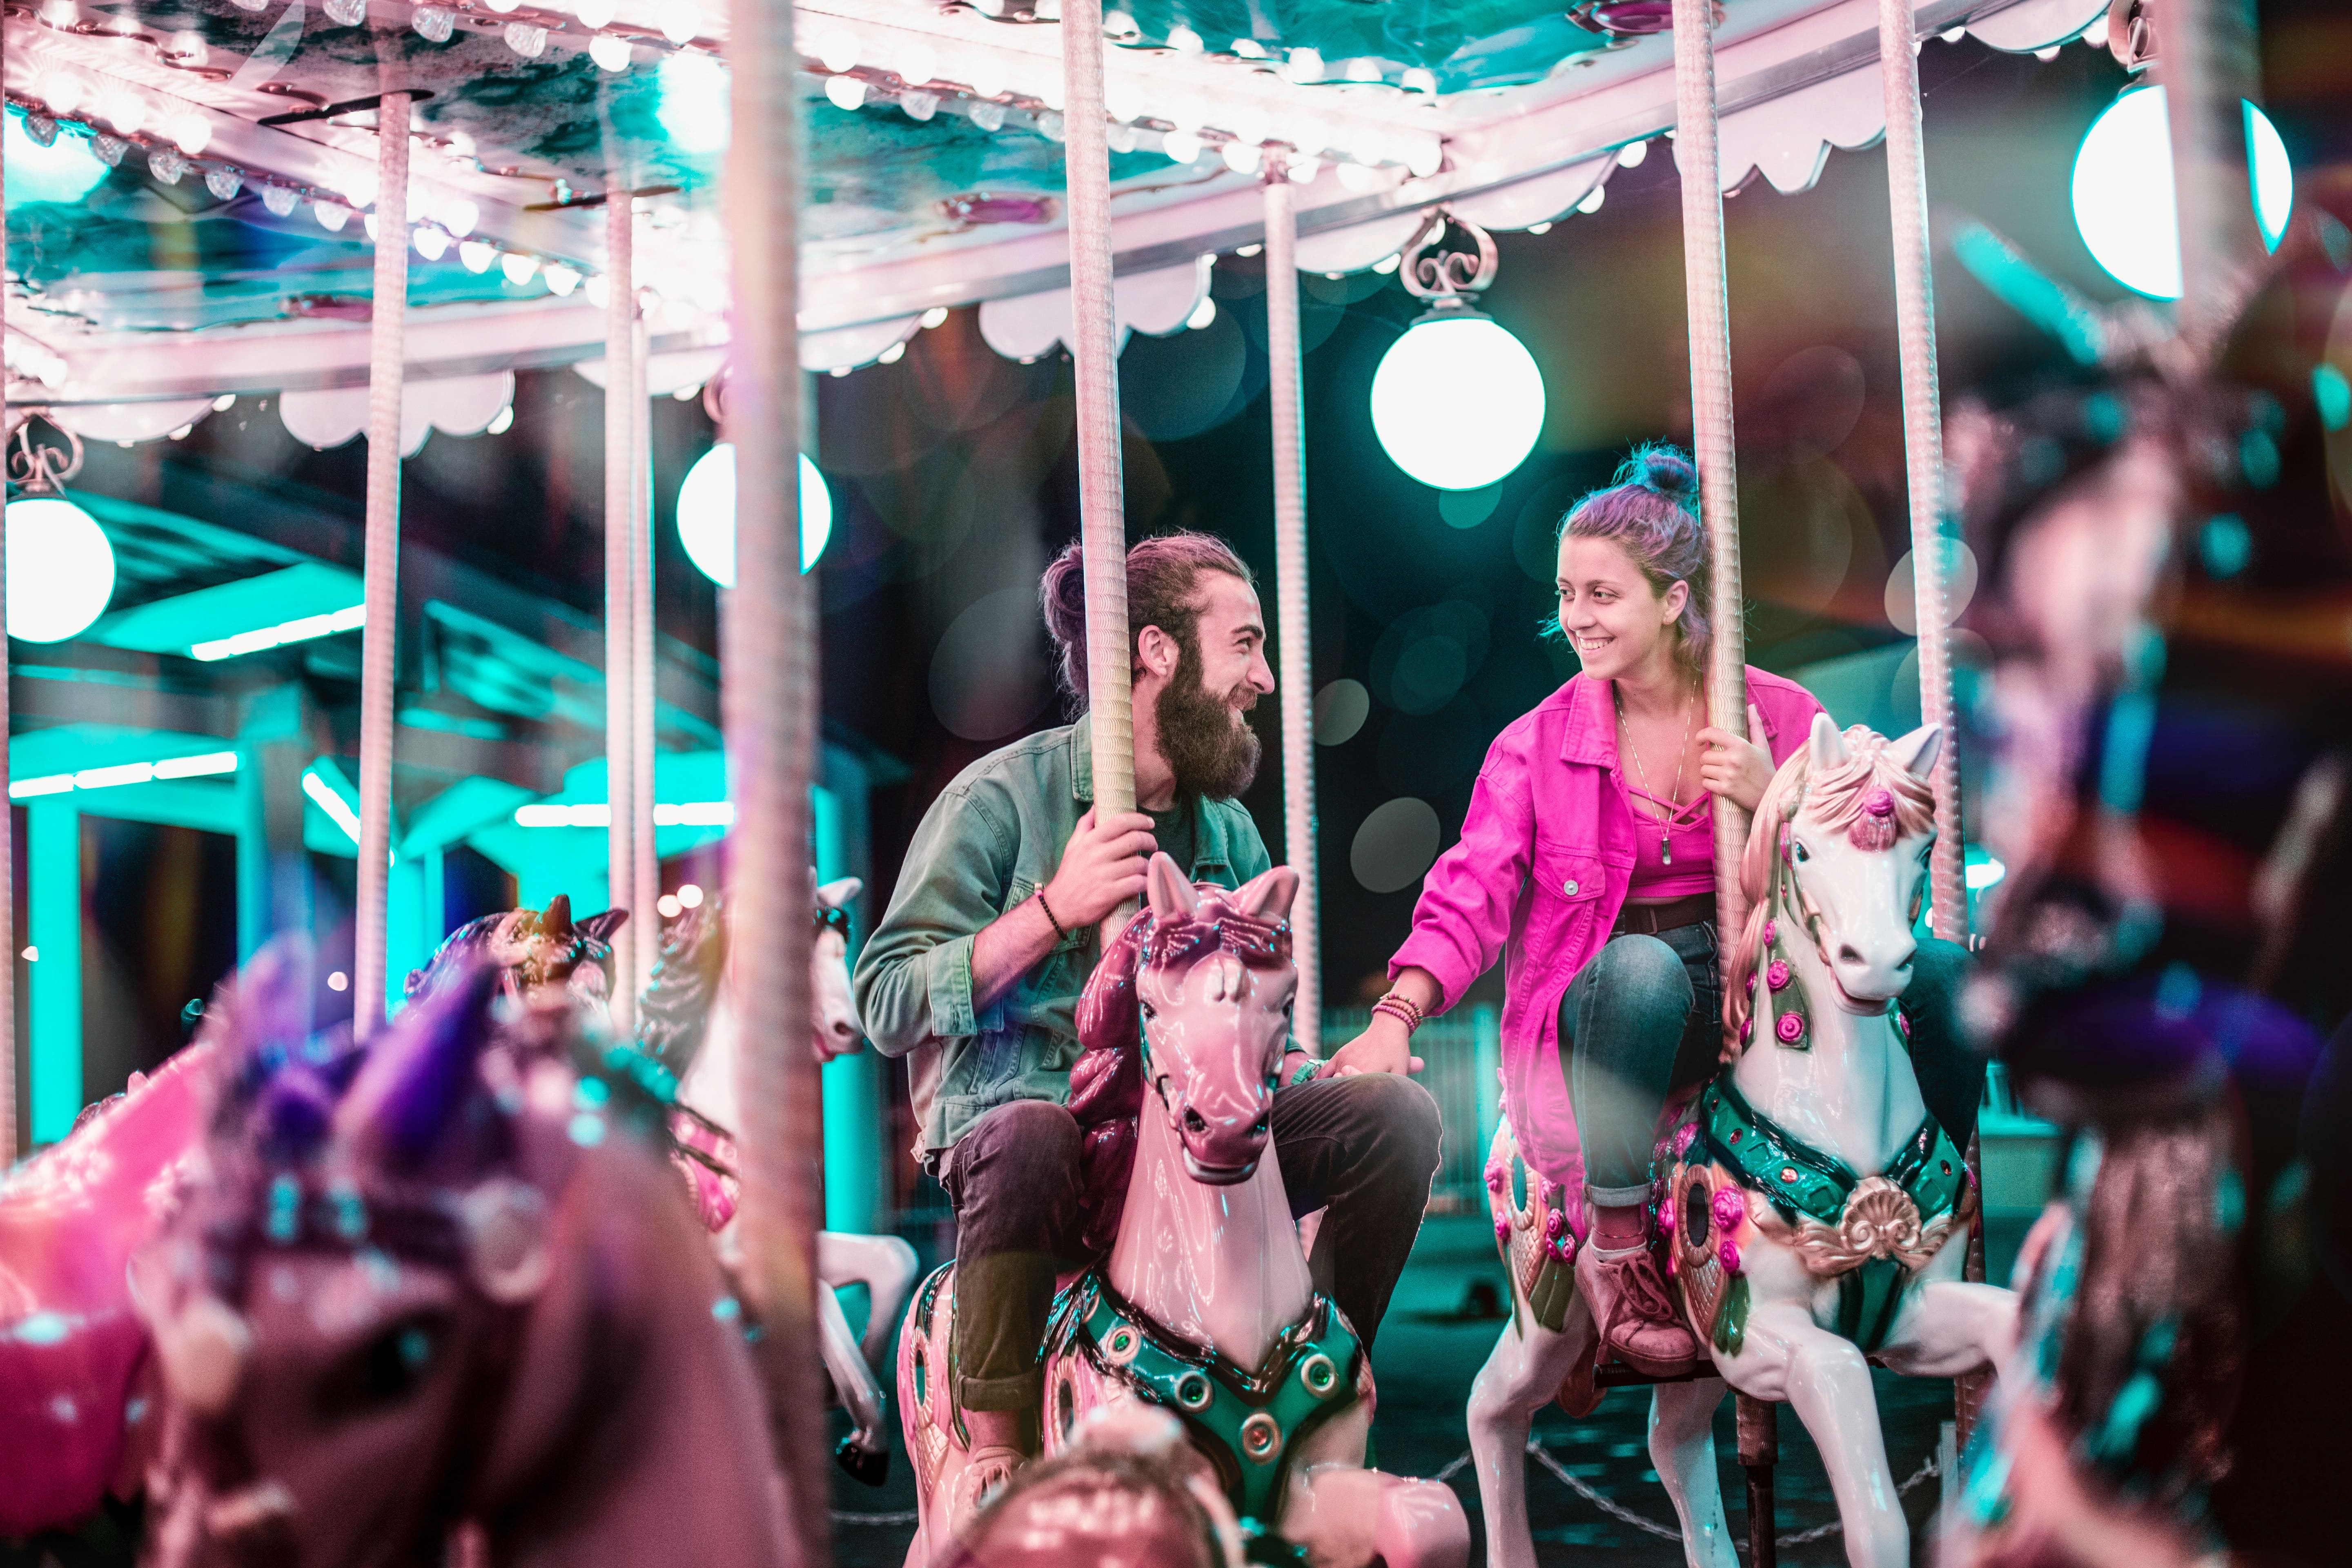 couple on a carousel at Christmas